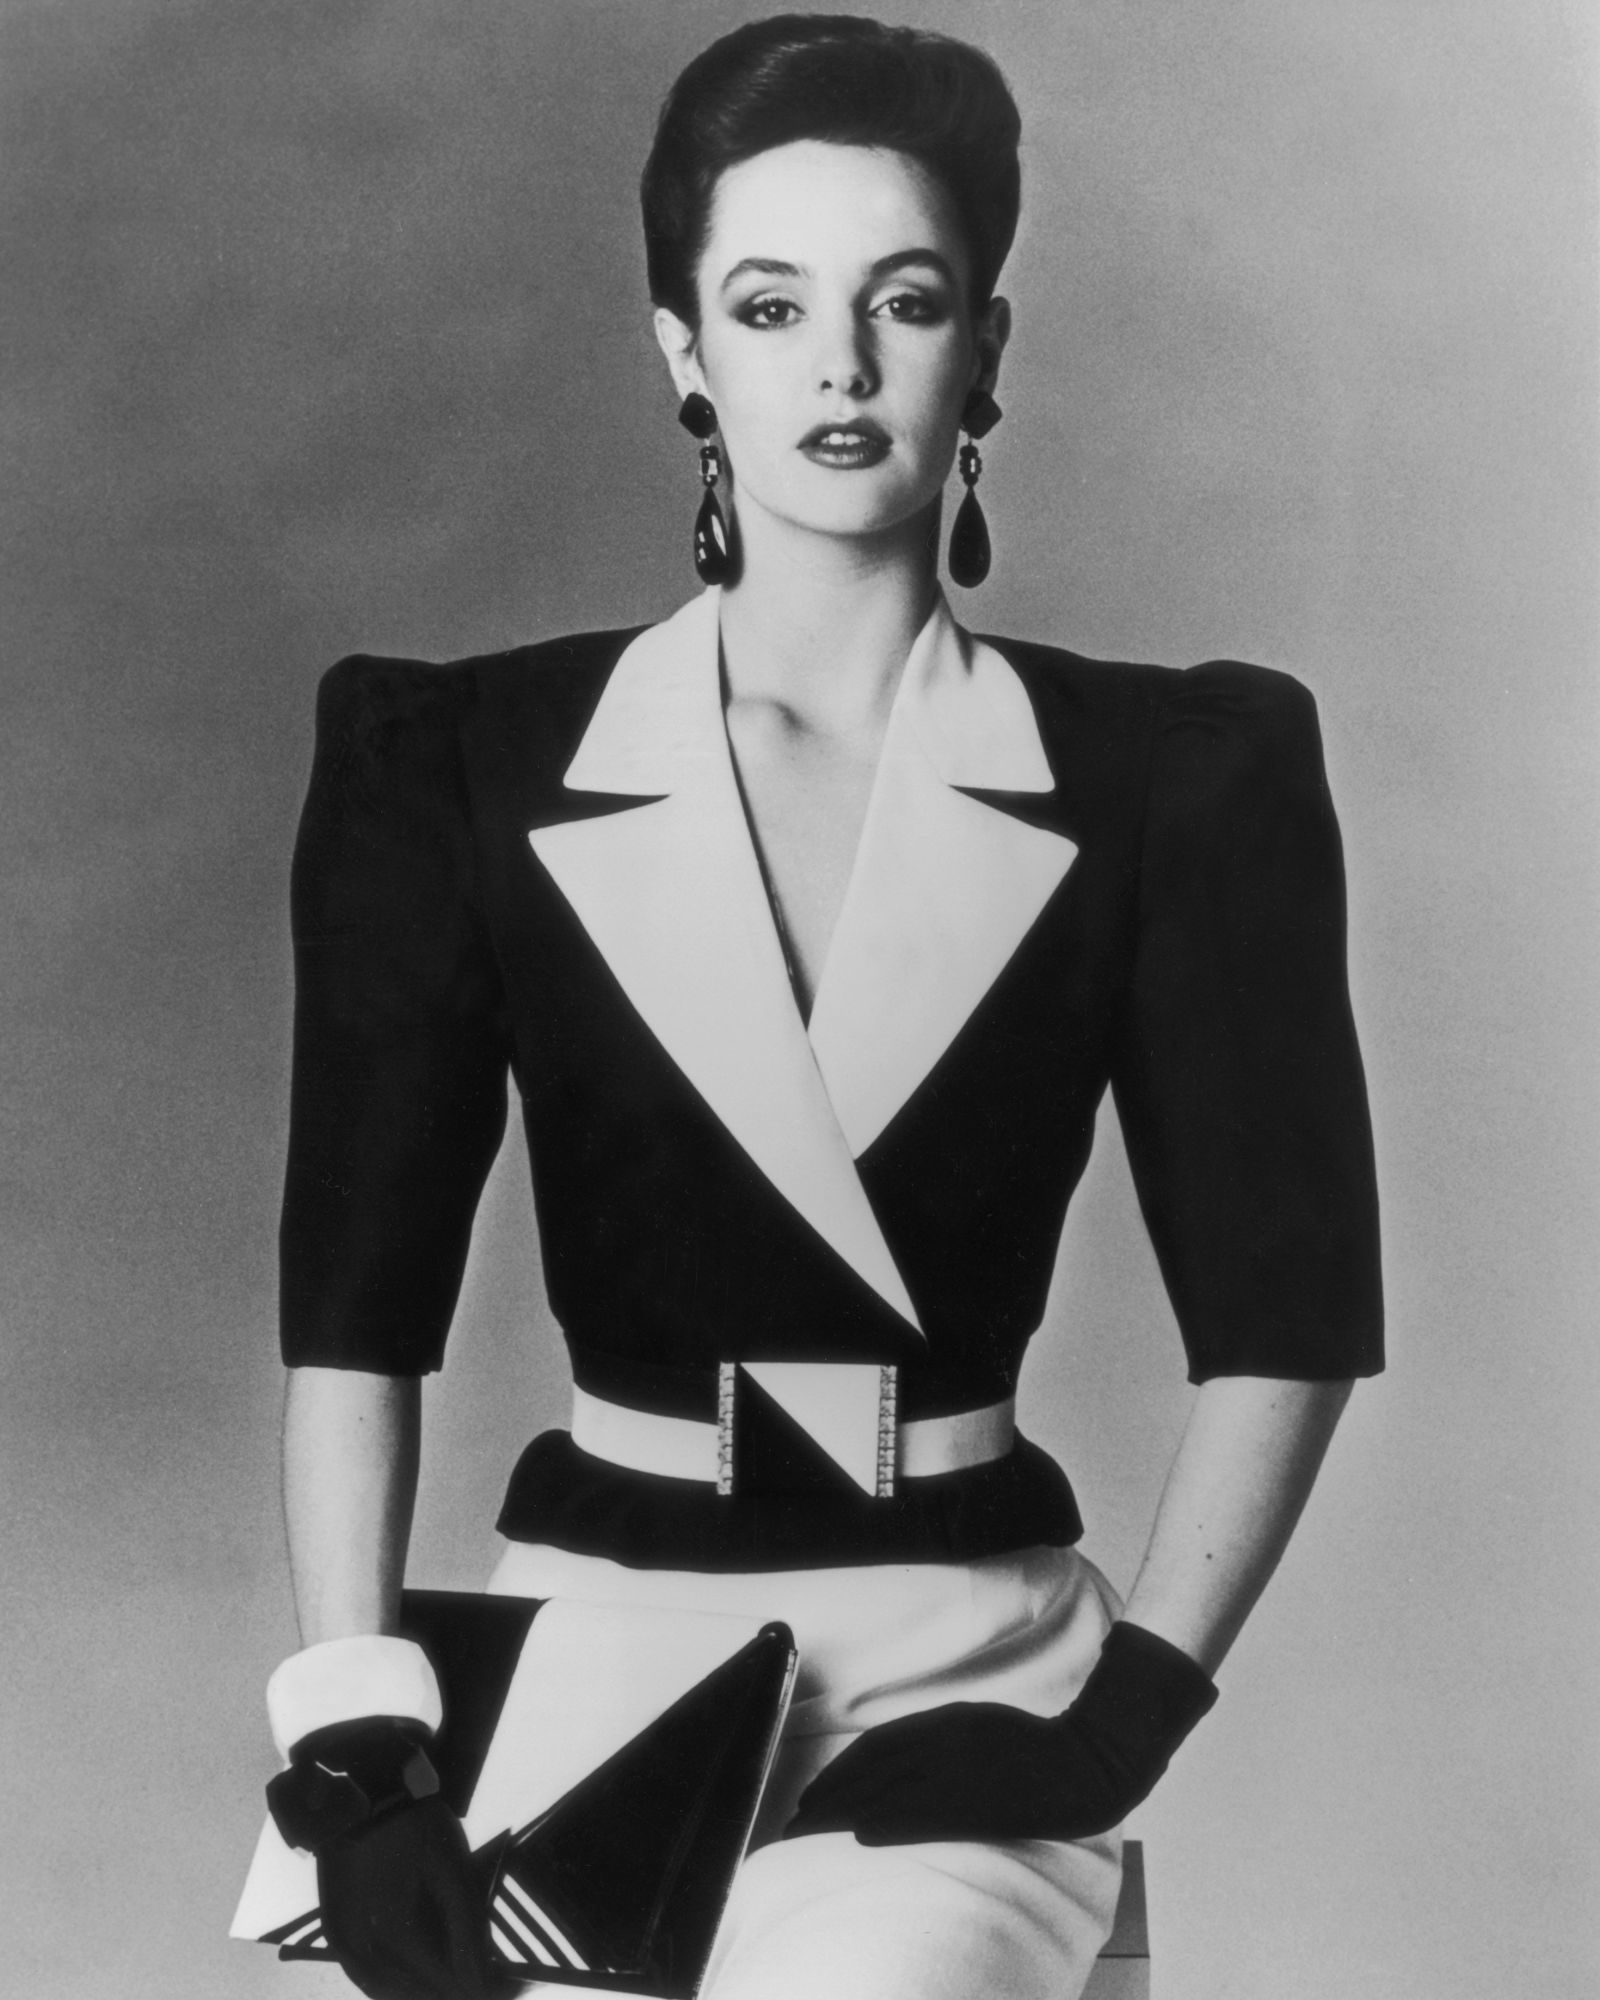 A great example of 1980 power dressing: exaggerate wide shoulders, created by shoulder pads inserted in the jackets, tiny waist, heavy materials, and shiny details in the accessories.